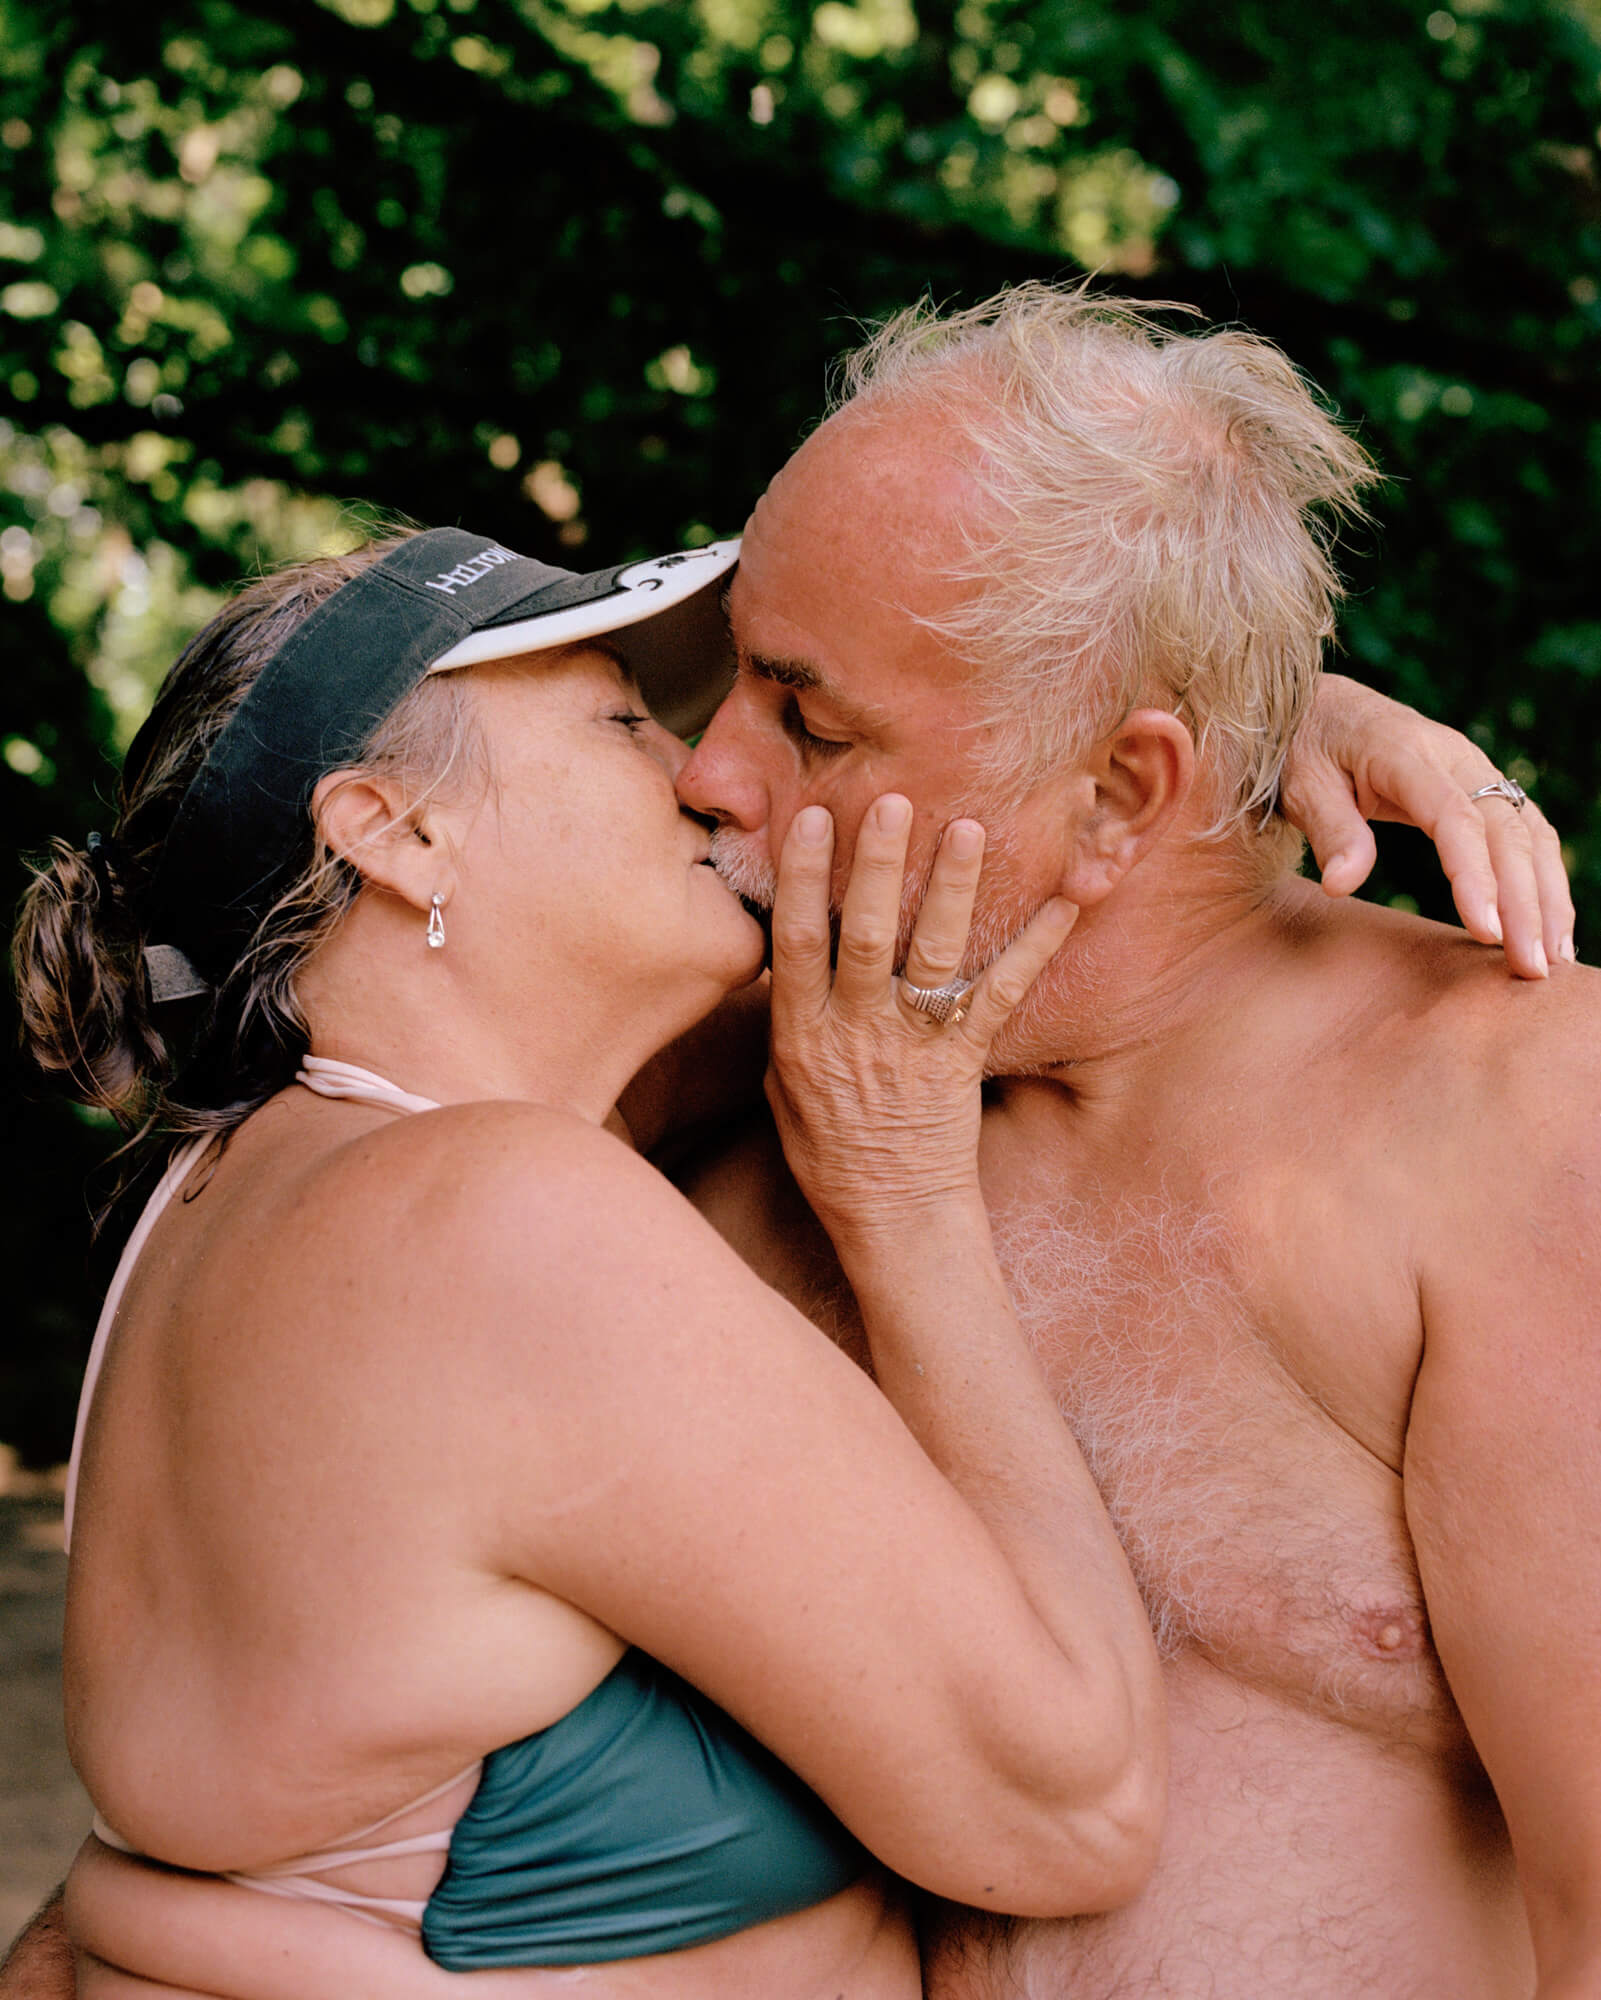 Caroline Tompkins Fantasy Body the south west collective of photography ltd old couple kissing